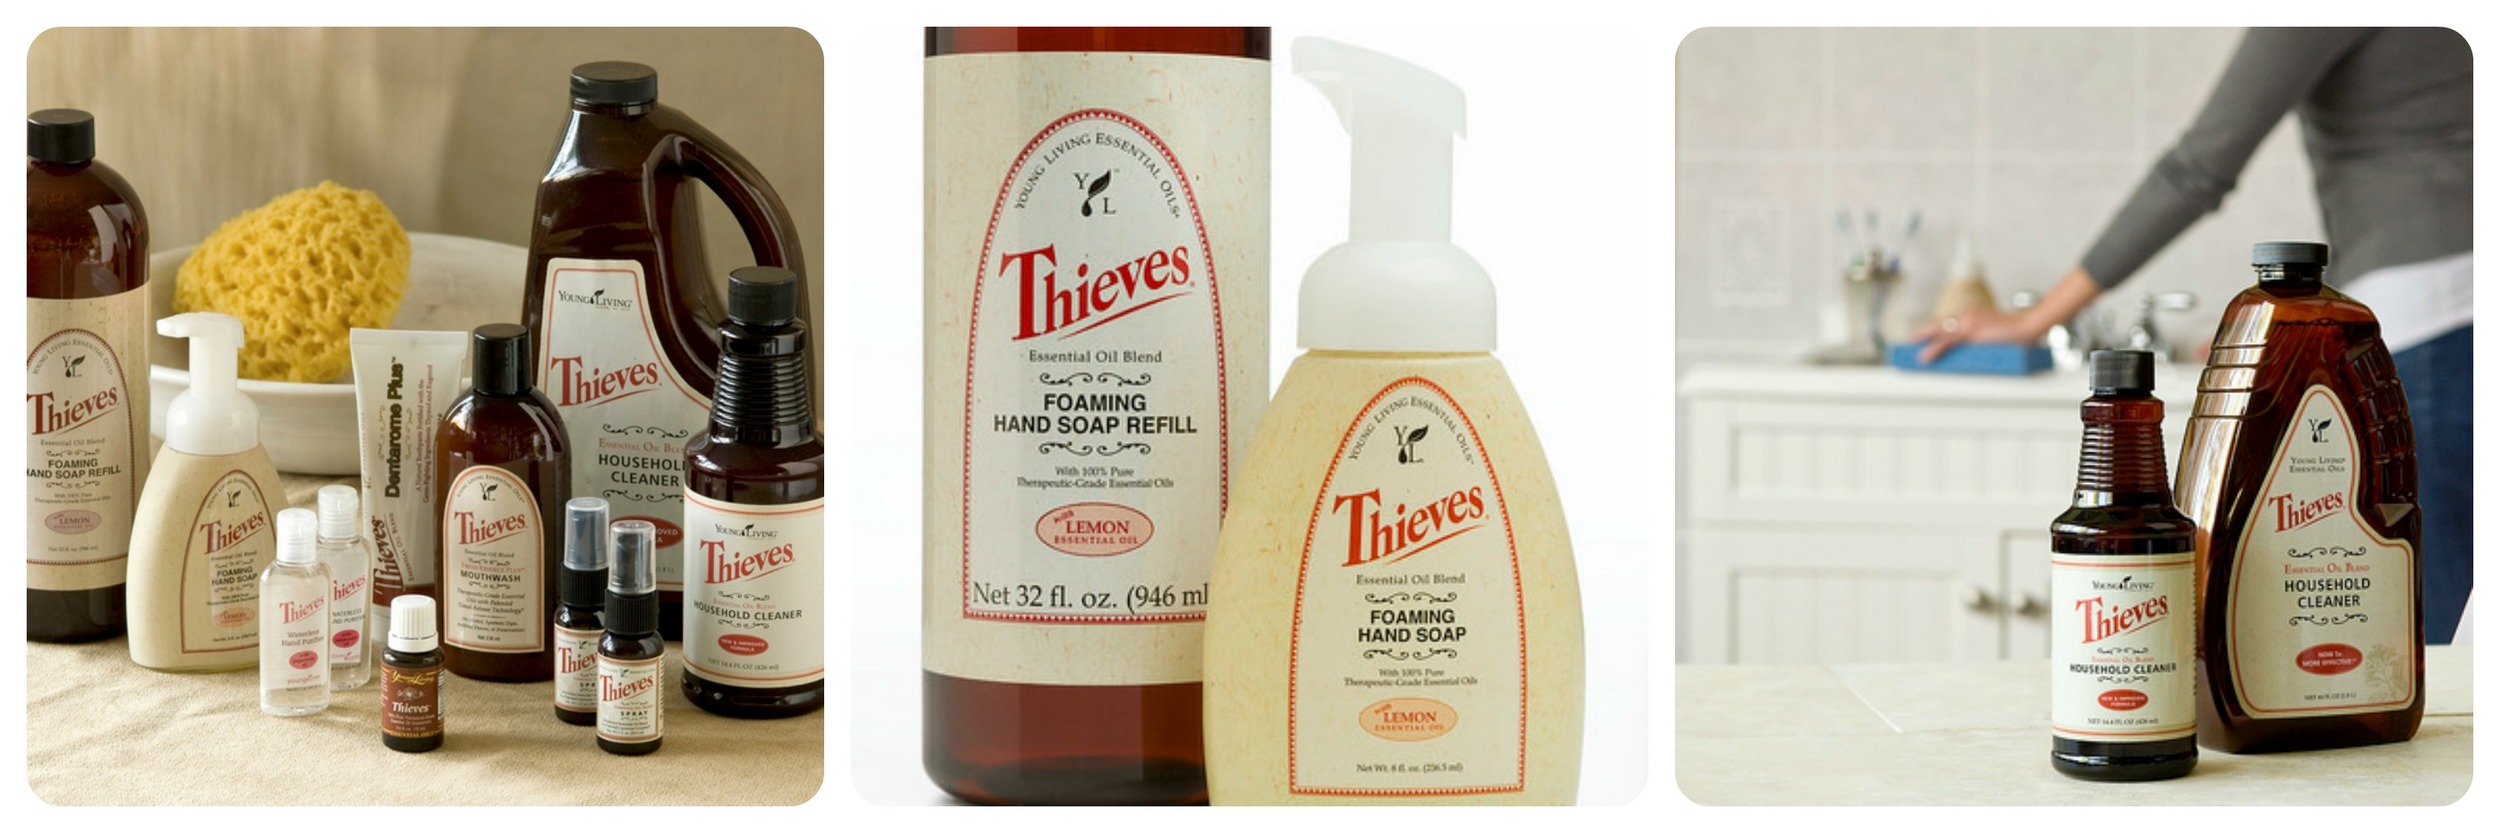 Thieves® Household Cleaner and Refill Thieves® Handsoap and Refill